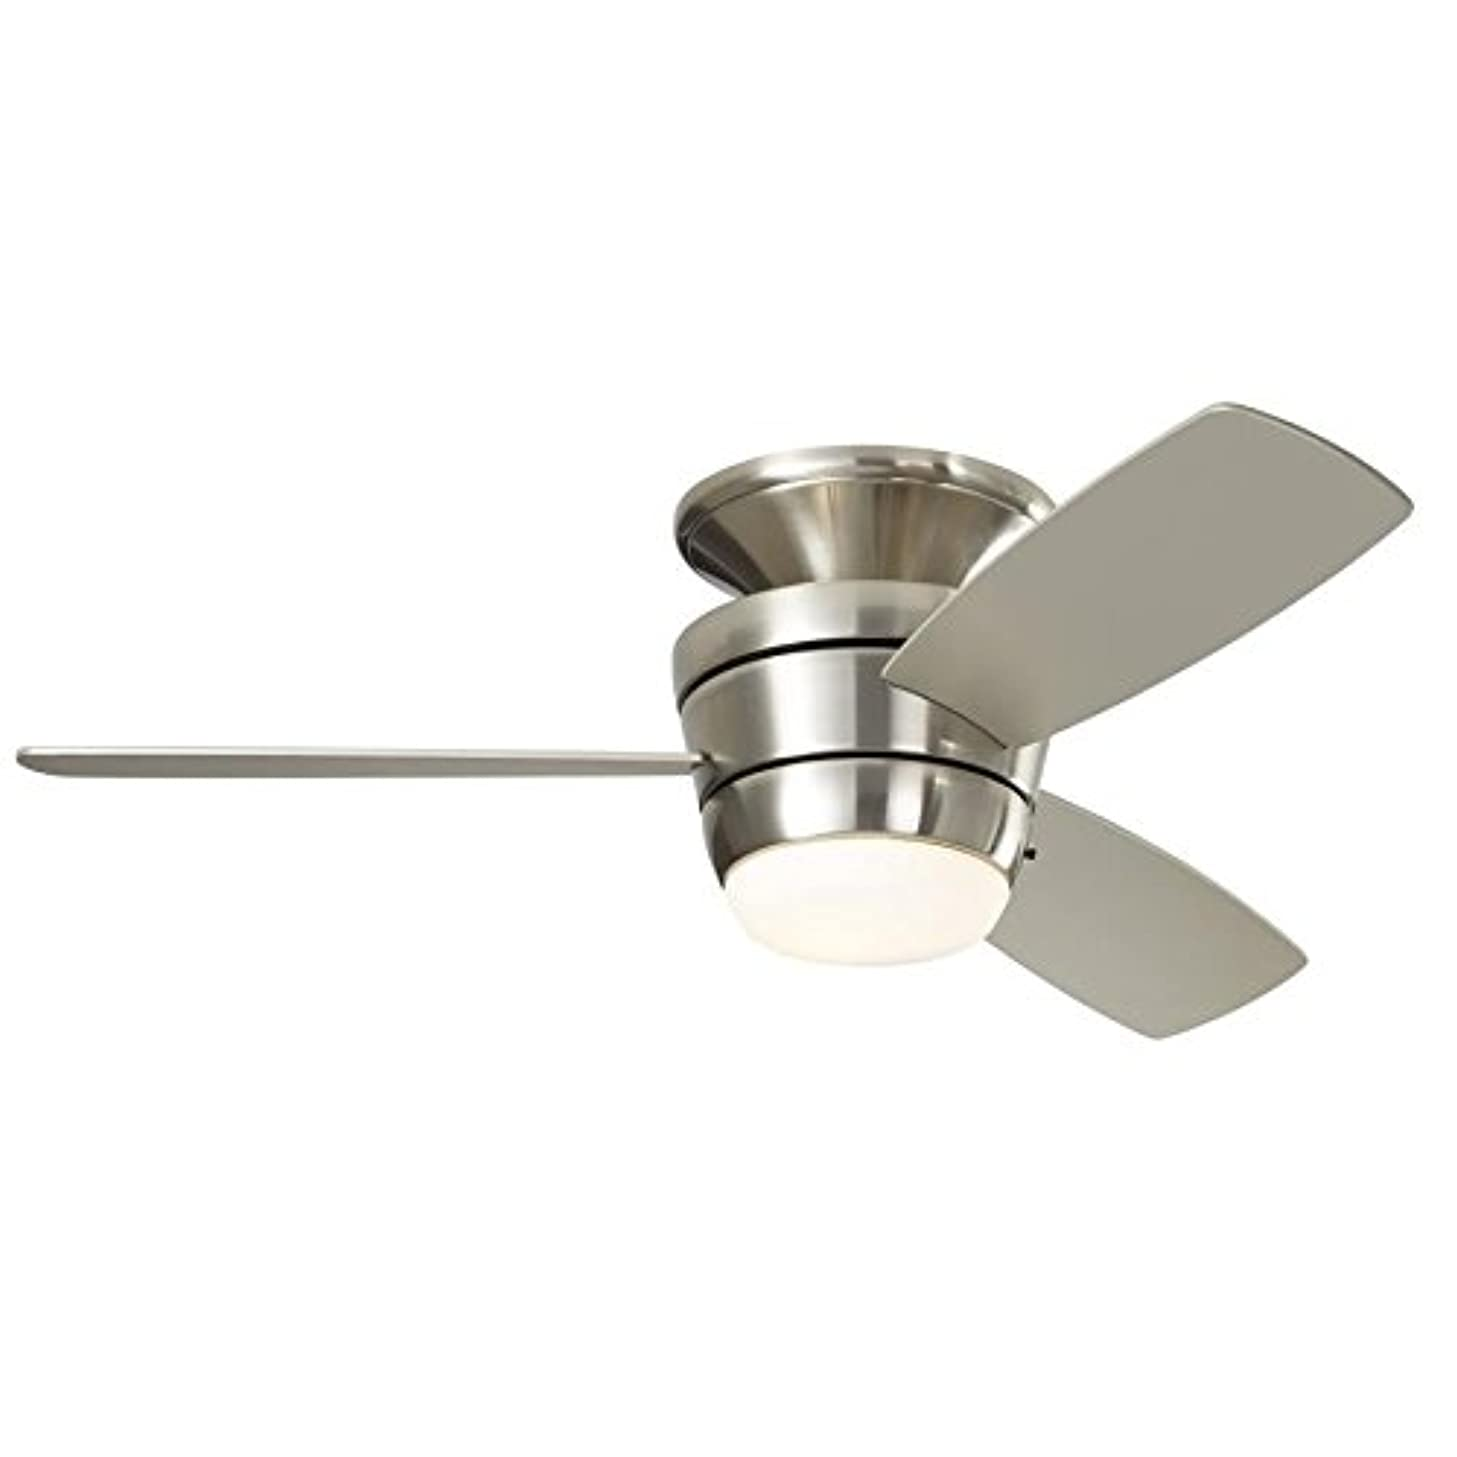 Harbor Breeze Mazon 44-in Brushed Nickel Flush Mount Indoor Ceiling Fan with Light Kit and Remote (3-Blade) bulzmtwae